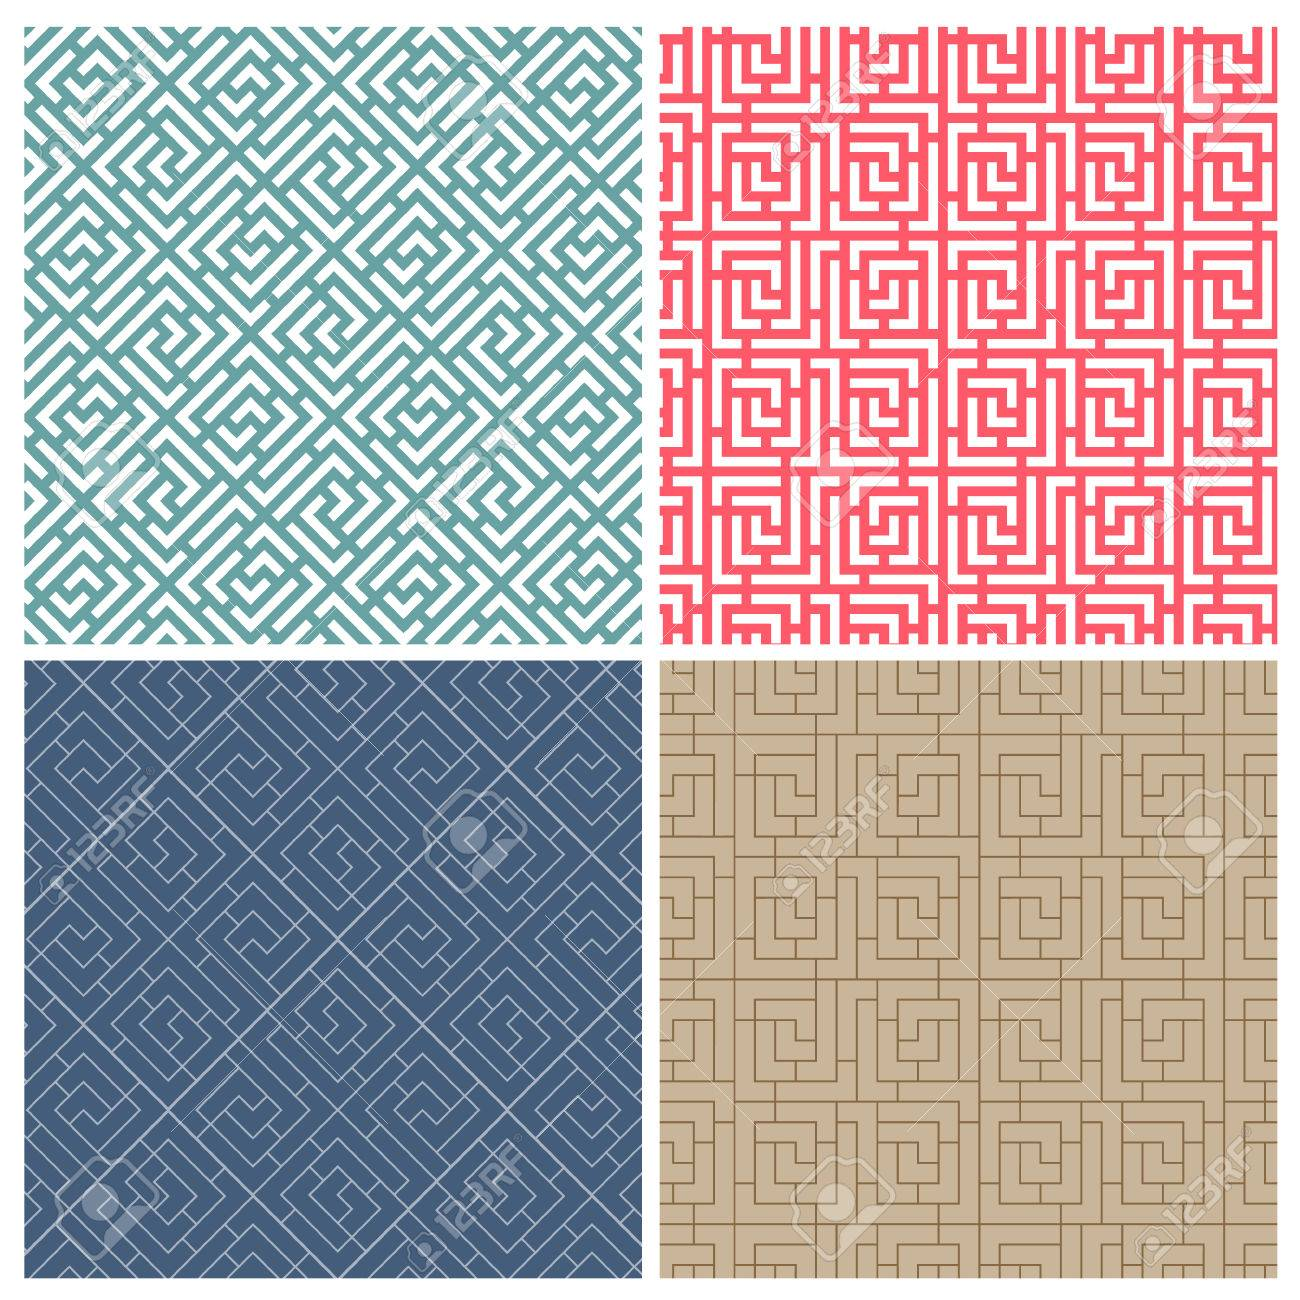 Set Of Four Illusion Maze Puzzle Tile Patterns Royalty Free Cliparts ...